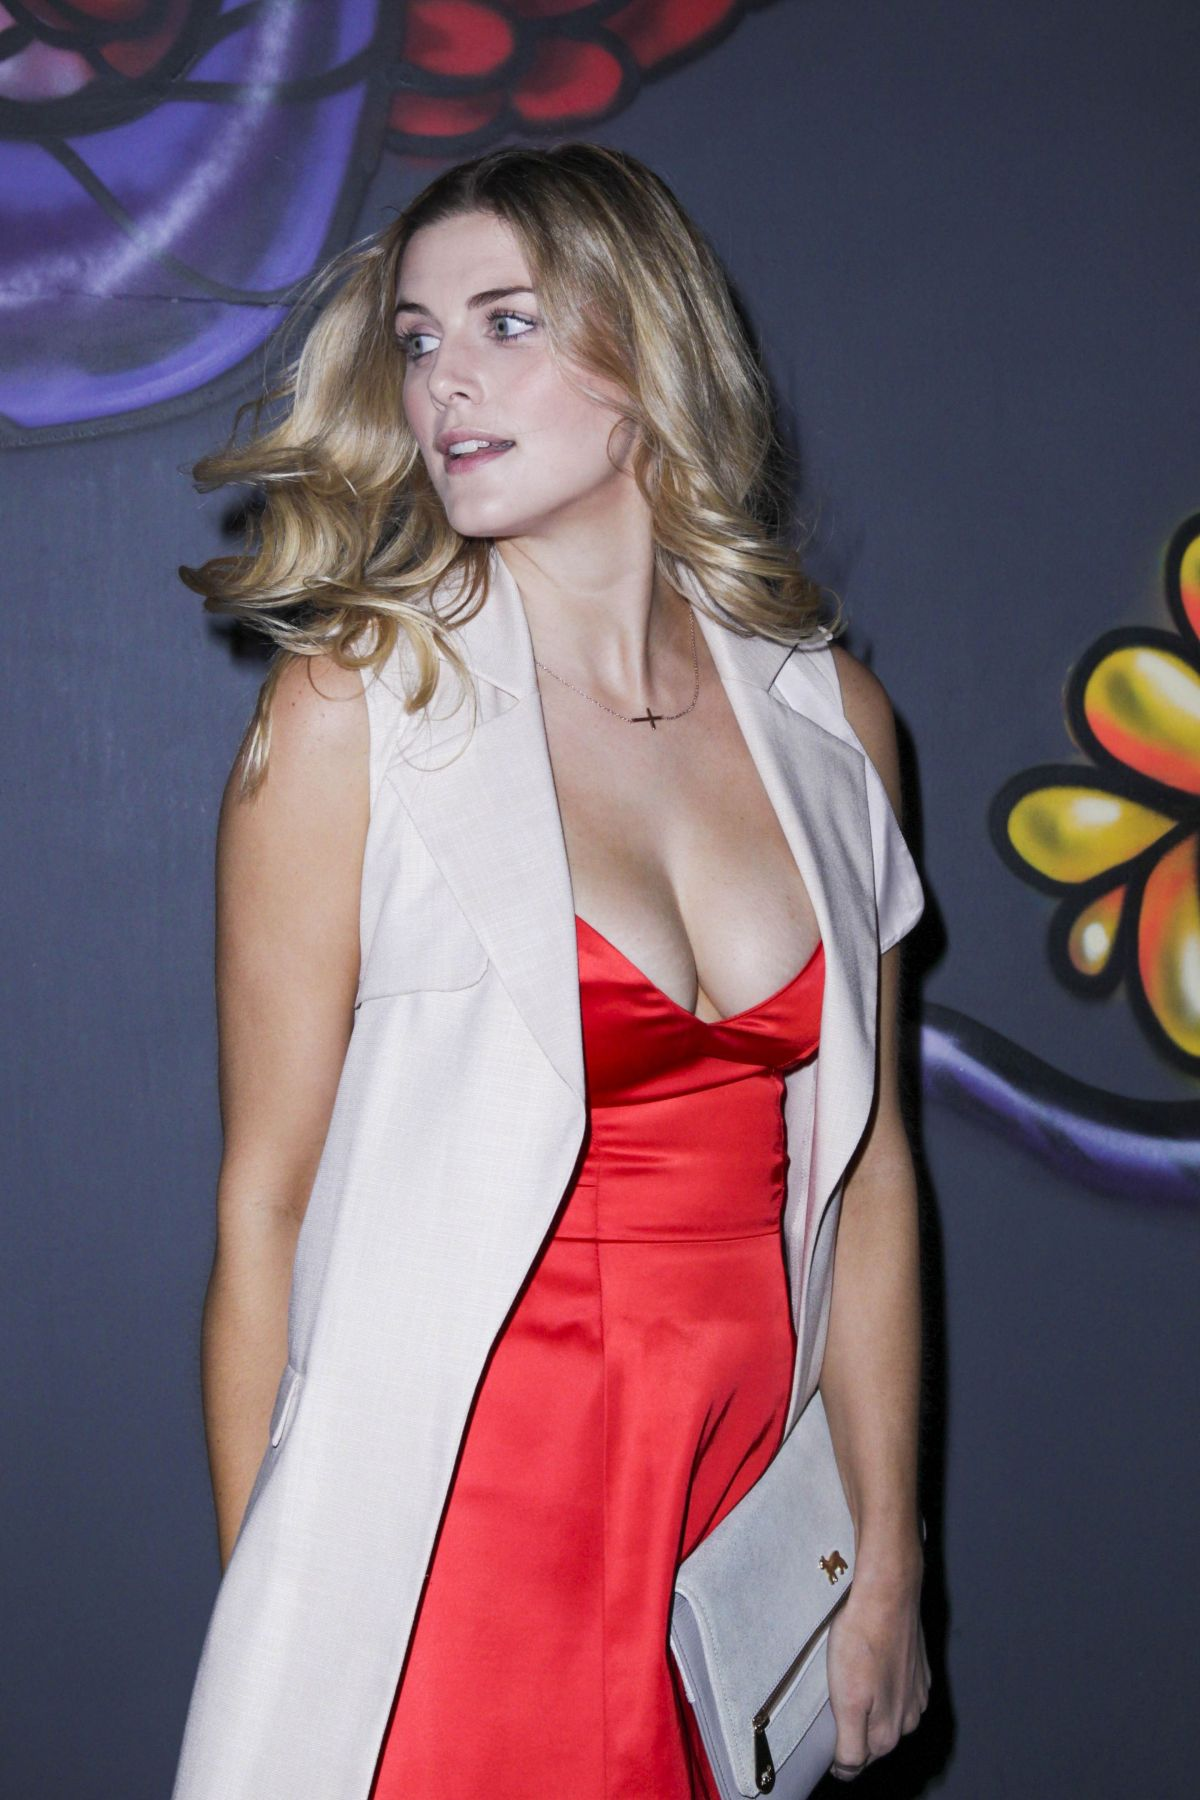 ASHLEY JAMES at Notion Magazine x Swatch Issue 70 Launch Party in London 09/09